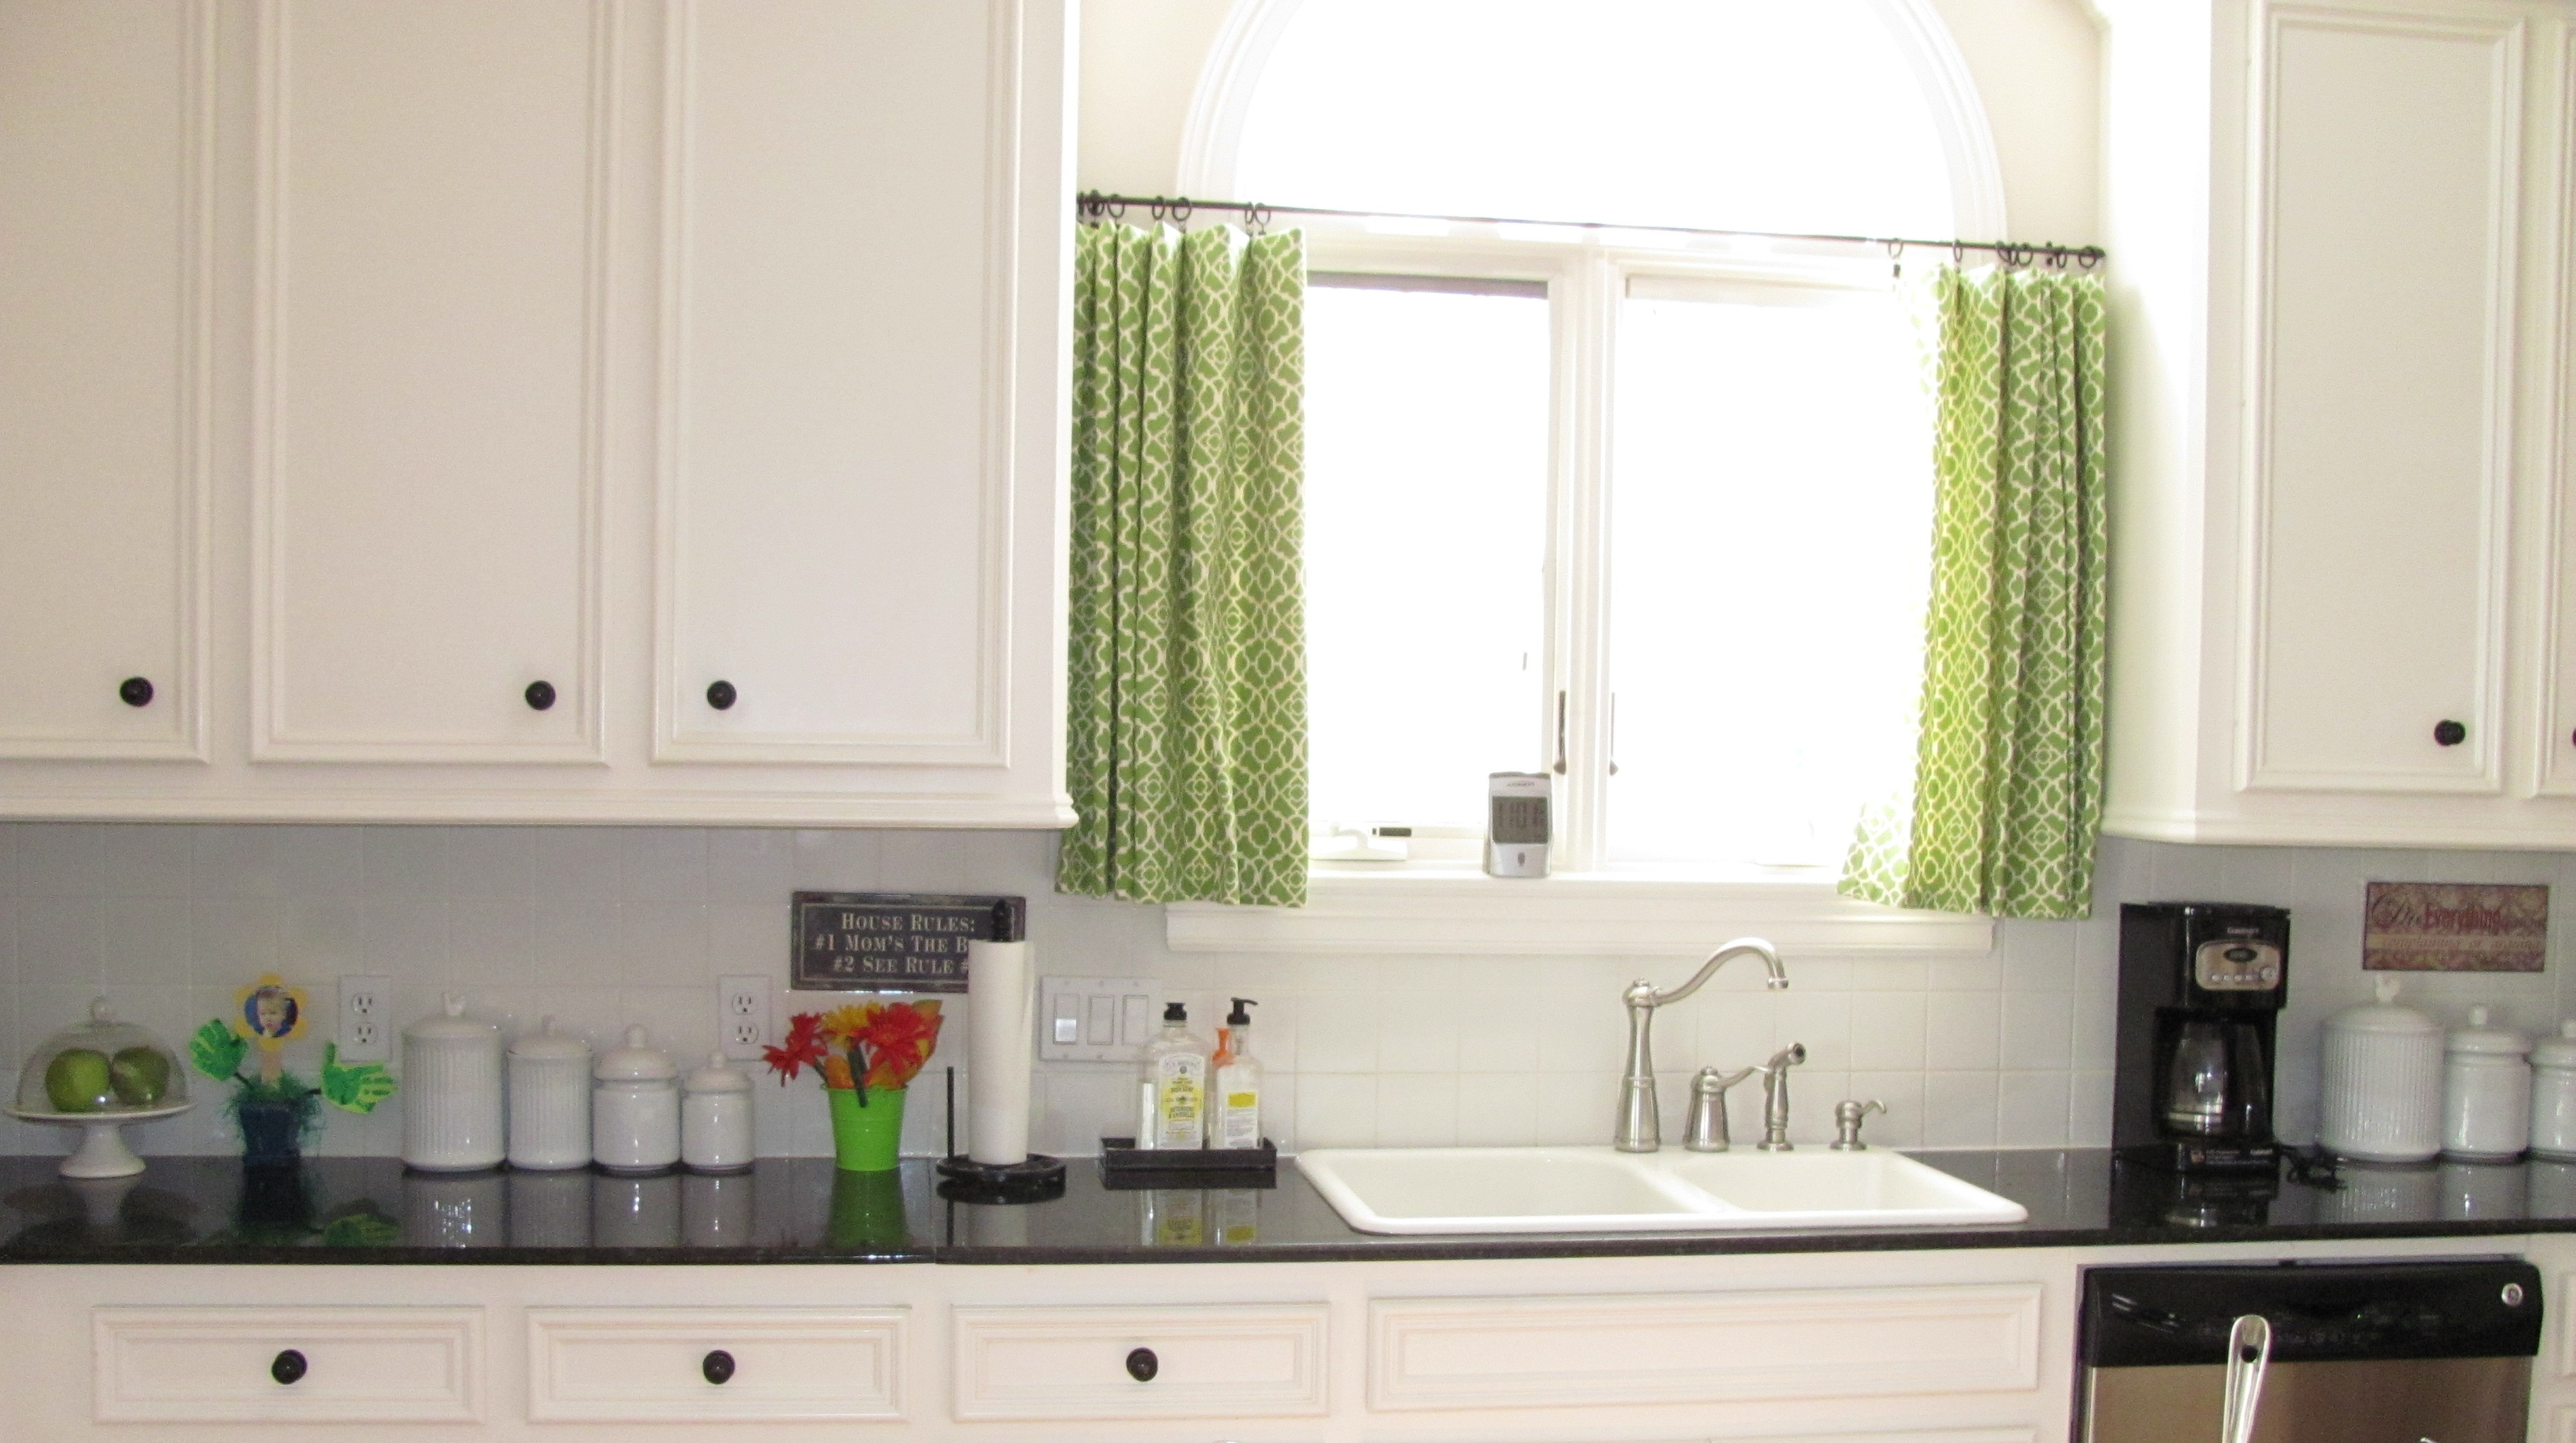 Window treatments for large kitchen windows - Simple White Kitchen With Green Short Curtain For Window